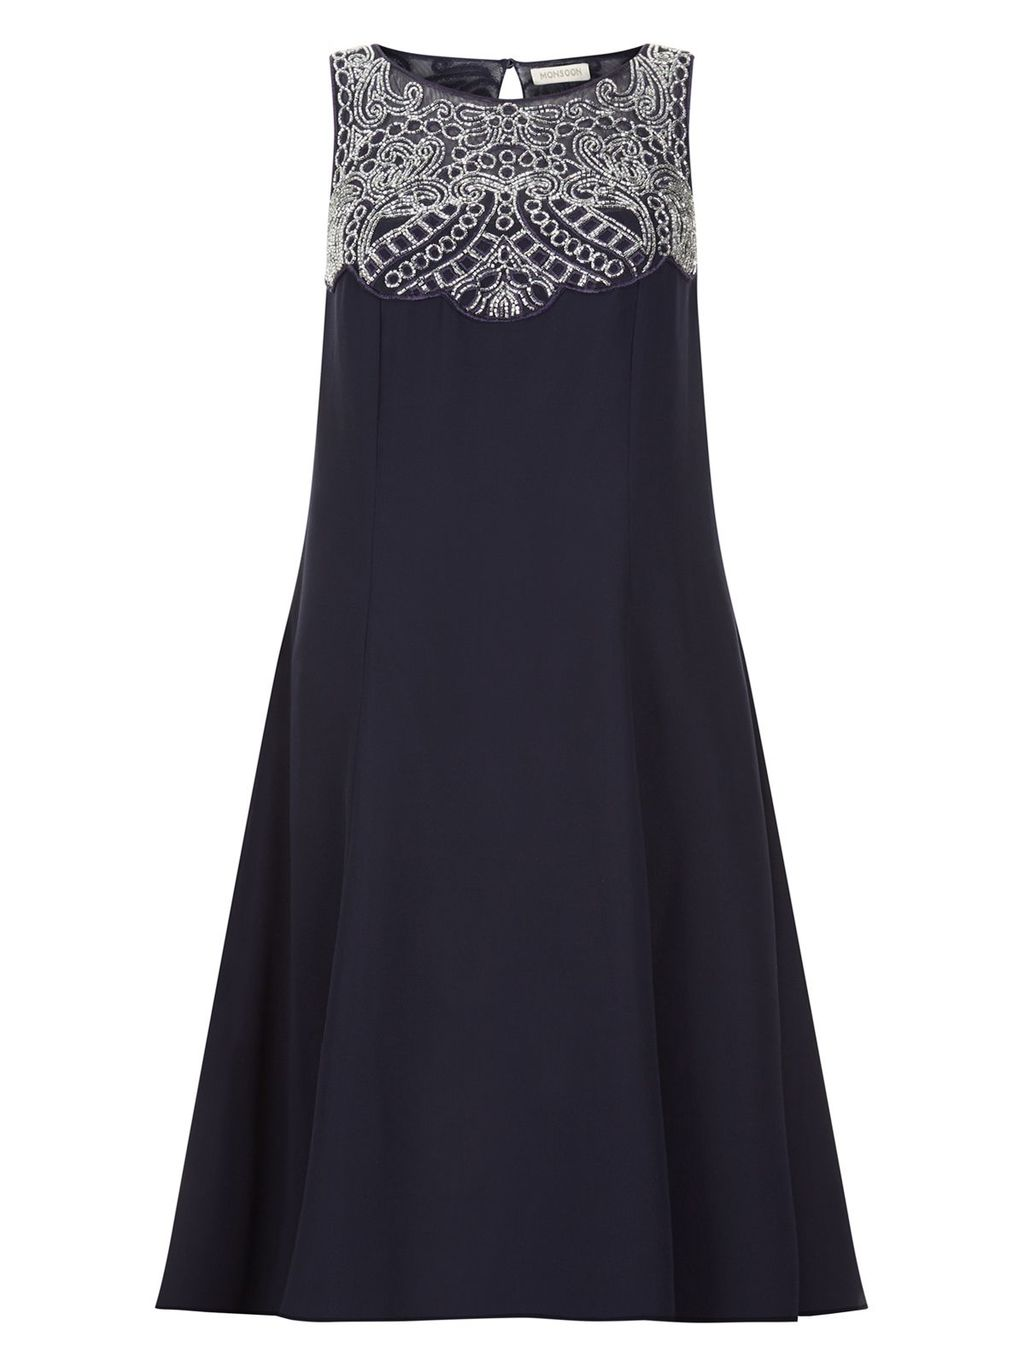 Clover Dress, Navy - style: shift; sleeve style: sleeveless; predominant colour: navy; secondary colour: light grey; occasions: evening; length: on the knee; fit: body skimming; fibres: polyester/polyamide - 100%; neckline: crew; hip detail: subtle/flattering hip detail; sleeve length: sleeveless; pattern type: fabric; pattern: patterned/print; texture group: other - light to midweight; multicoloured: multicoloured; season: s/s 2016; wardrobe: event